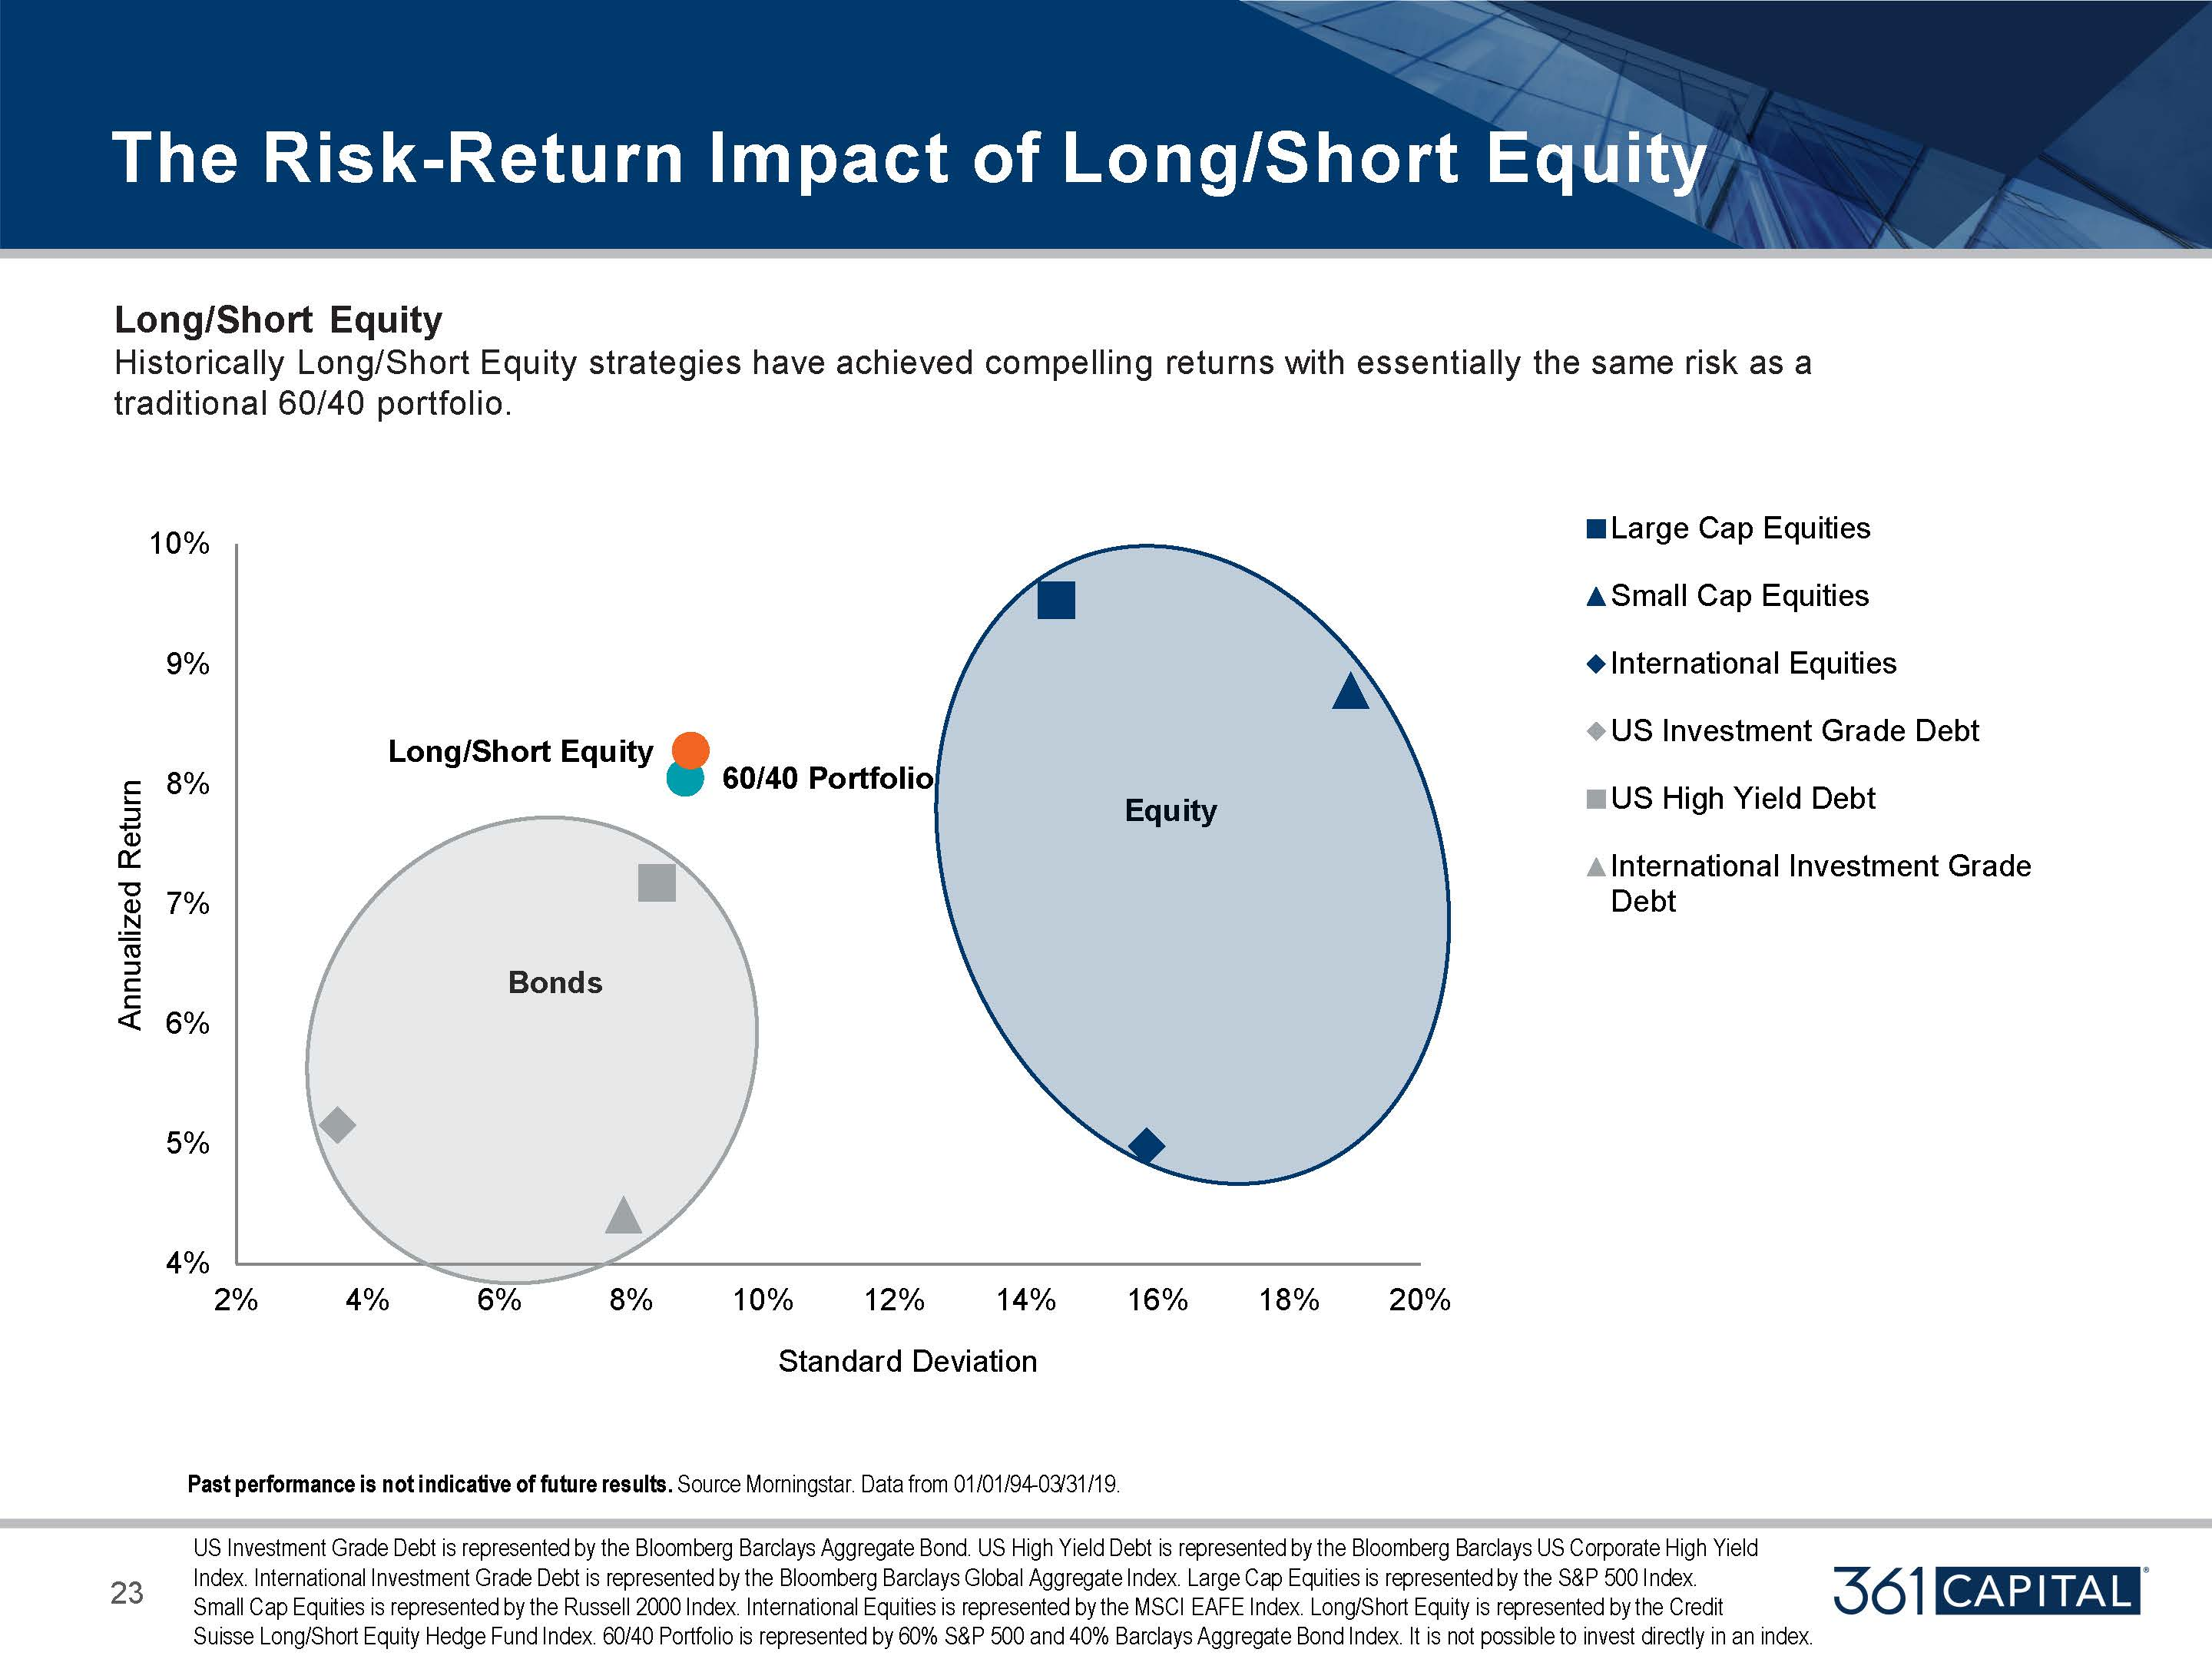 The Risk-Return Impact of Long Short Equity - Historically Long/Short Equity strategies have achieved compelling returns with essentially the same risk as a traditional 60/40 portfolio